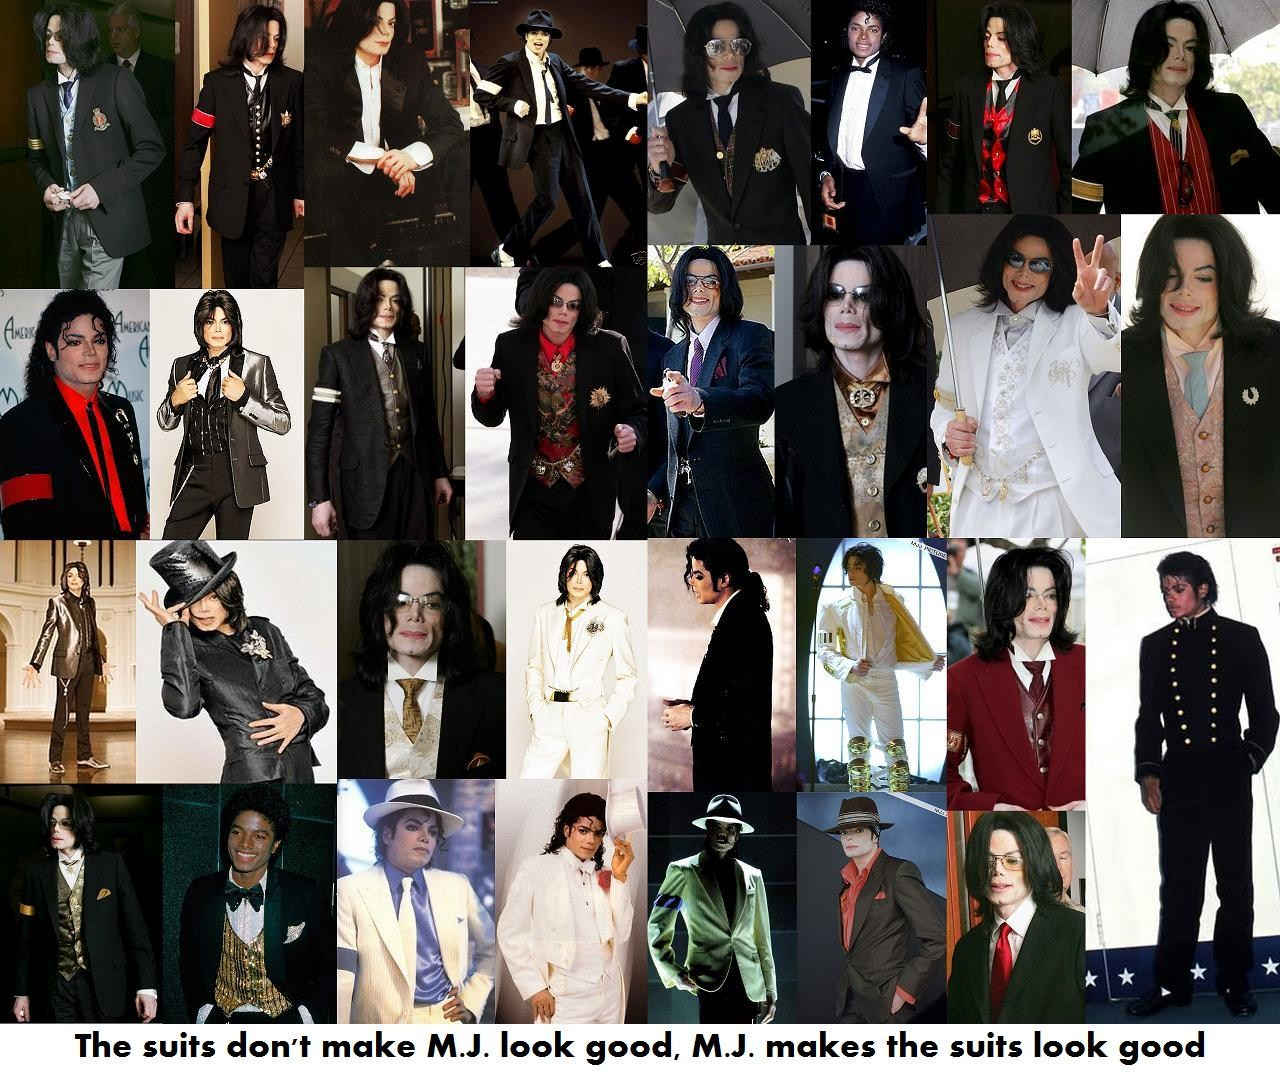 http://images4.fanpop.com/image/photos/23900000/suits-michael-jackson-23964138-1280-1079.jpg